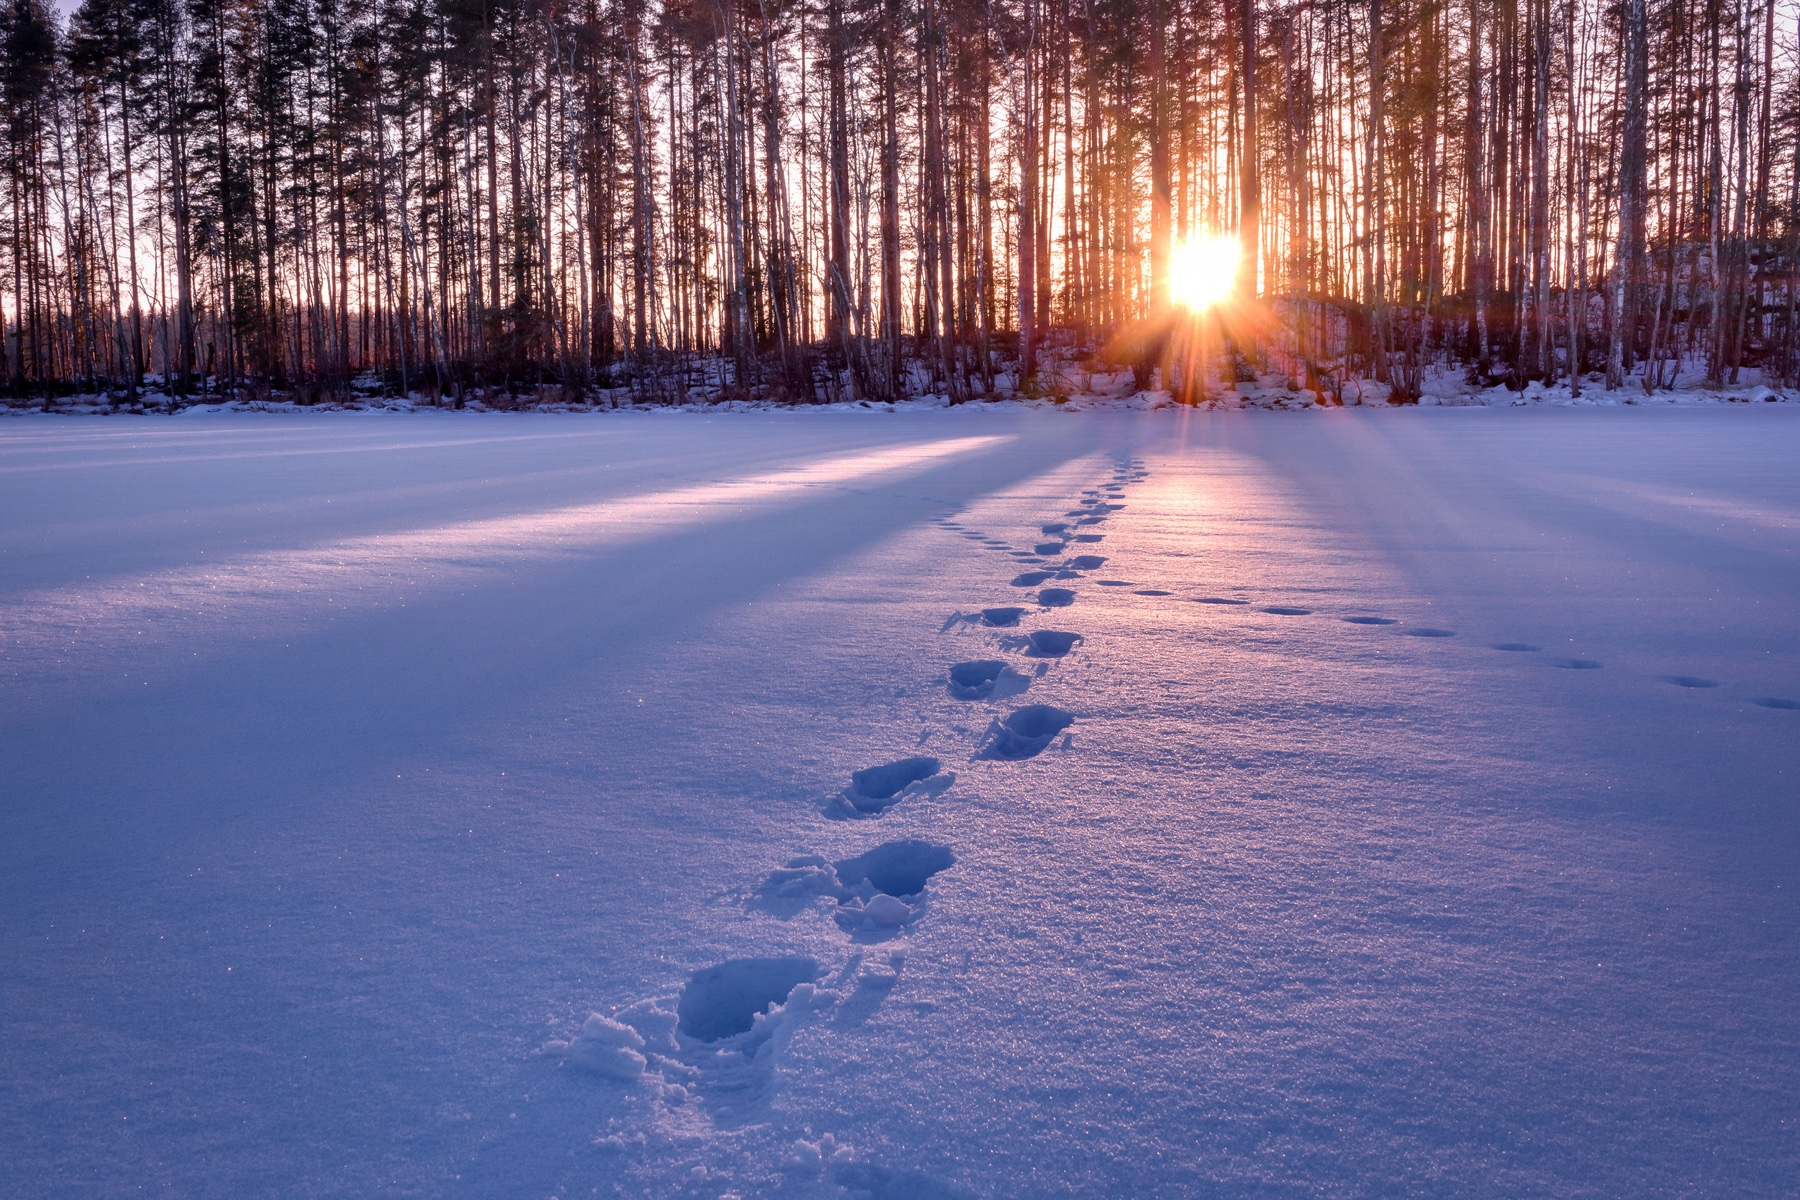 71226241 – footprints in snow leading towards sunset hdr shot